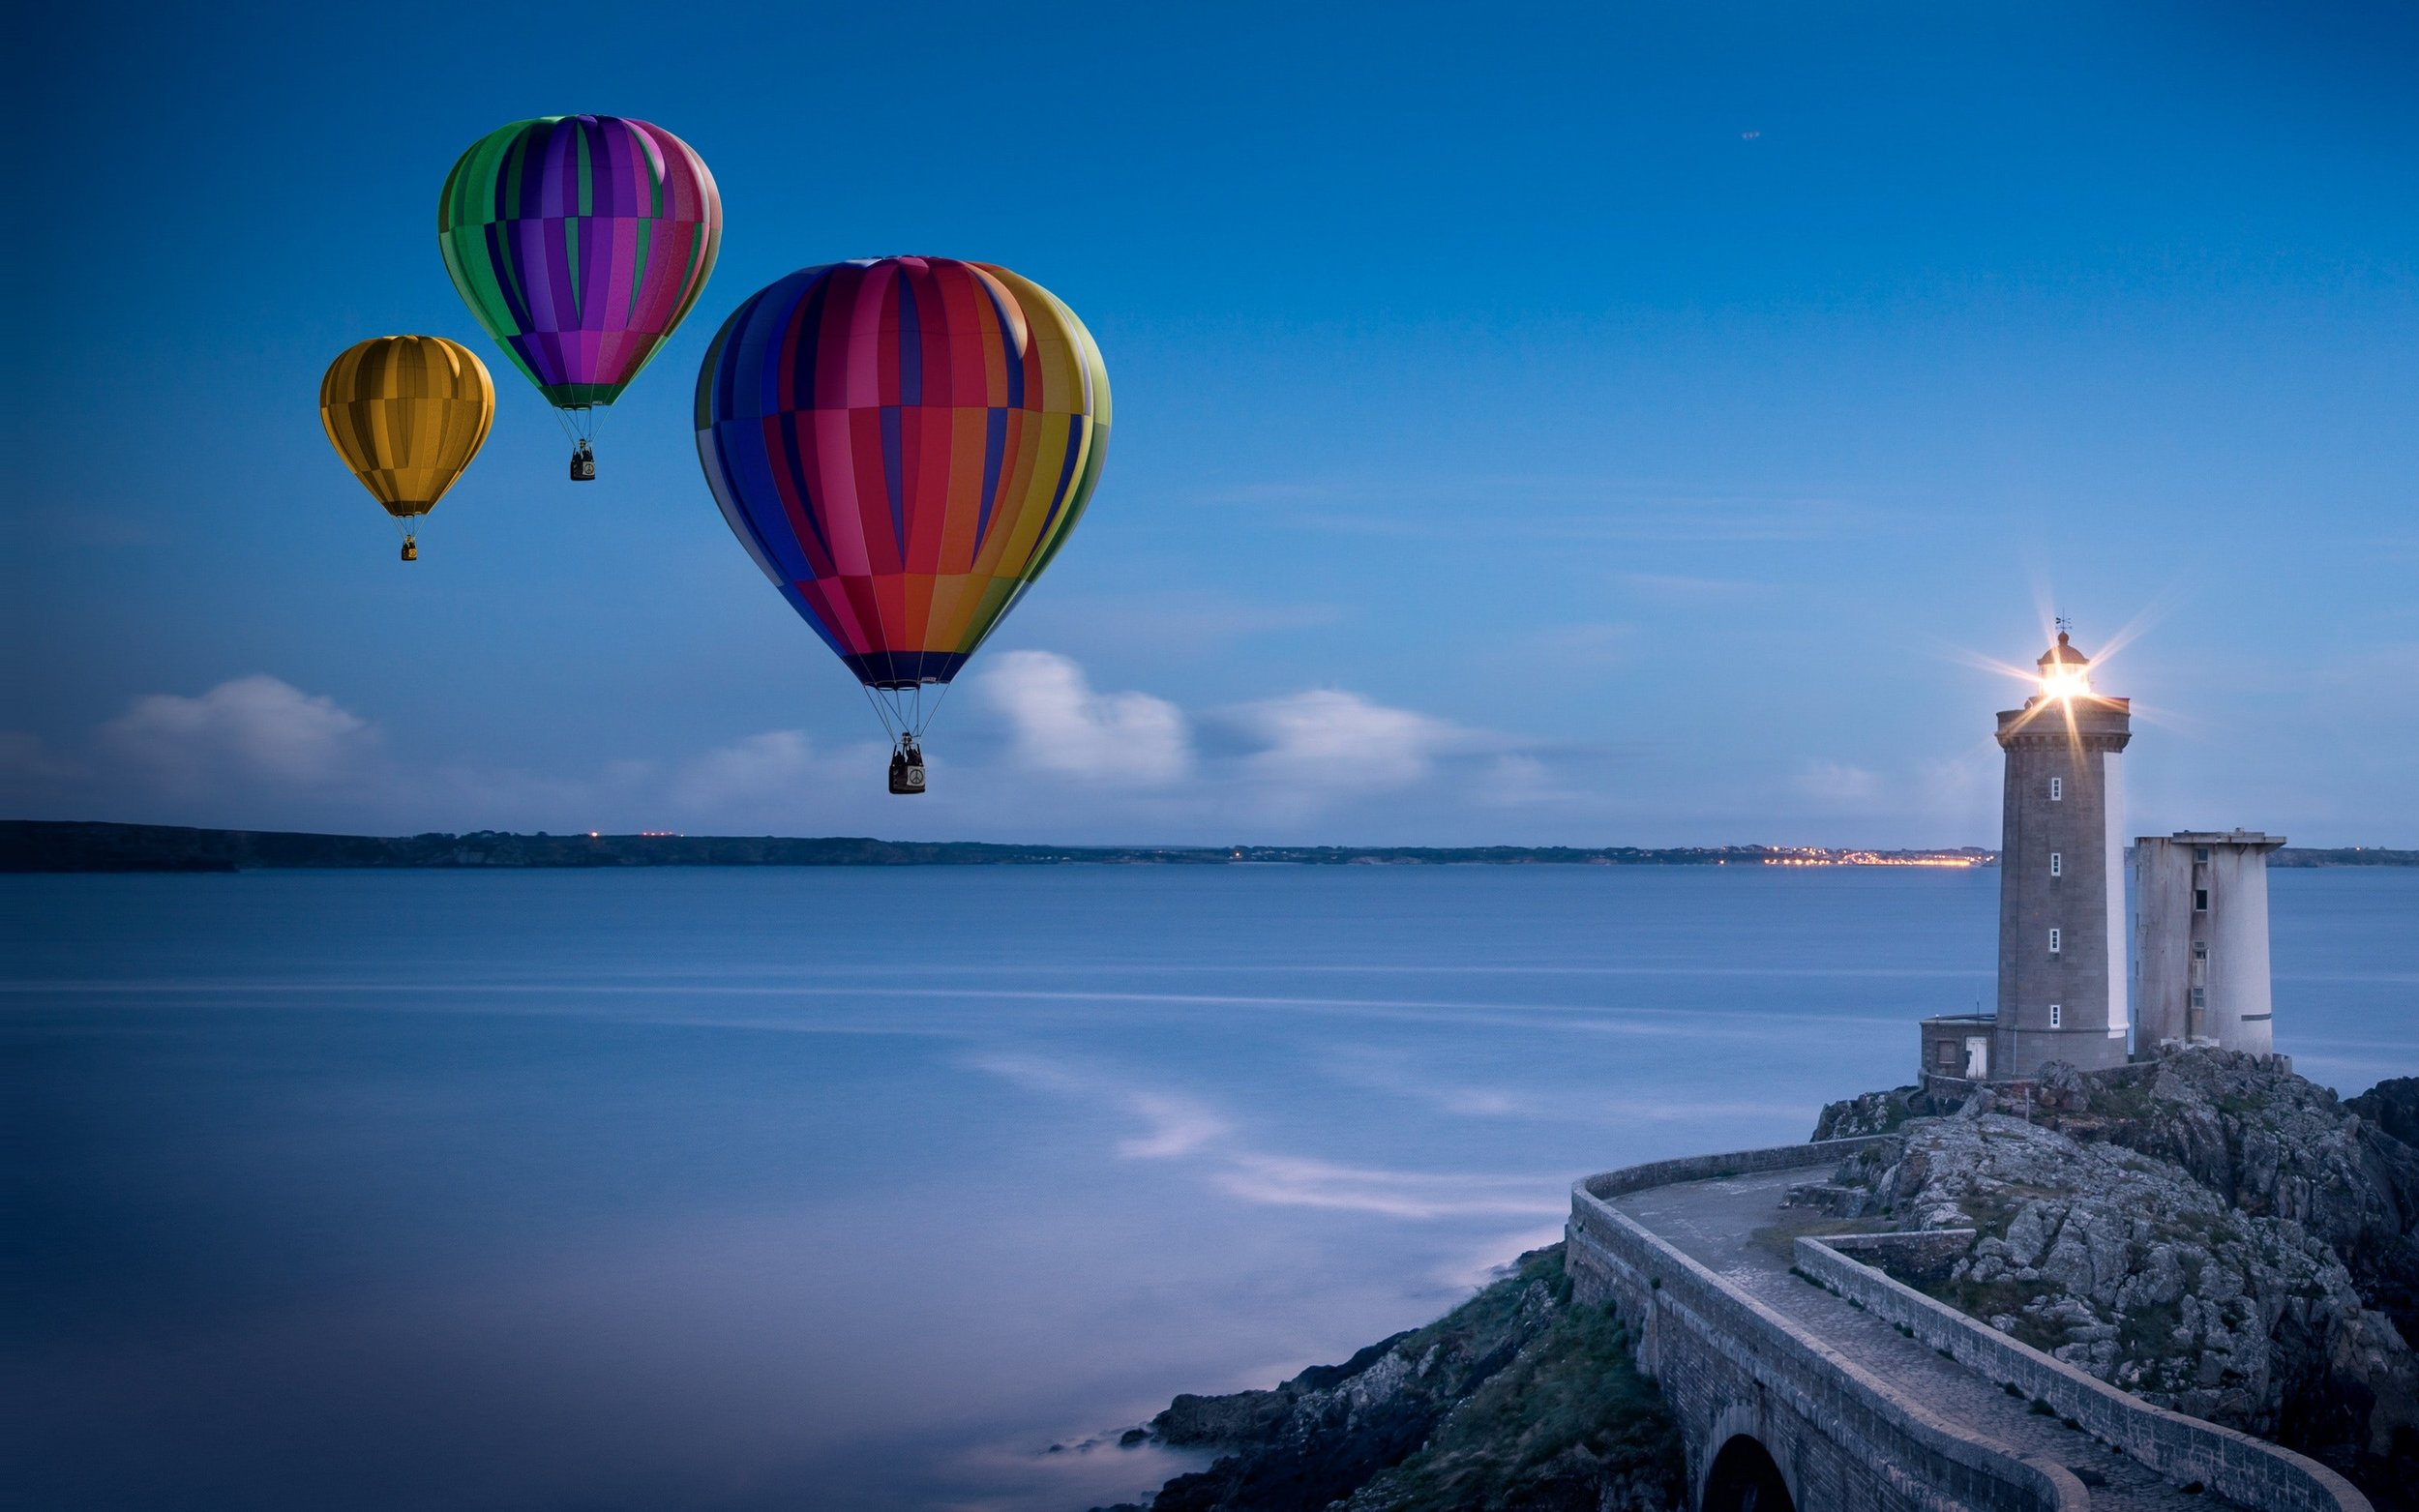 balloon-beach-clouds-428625.jpg